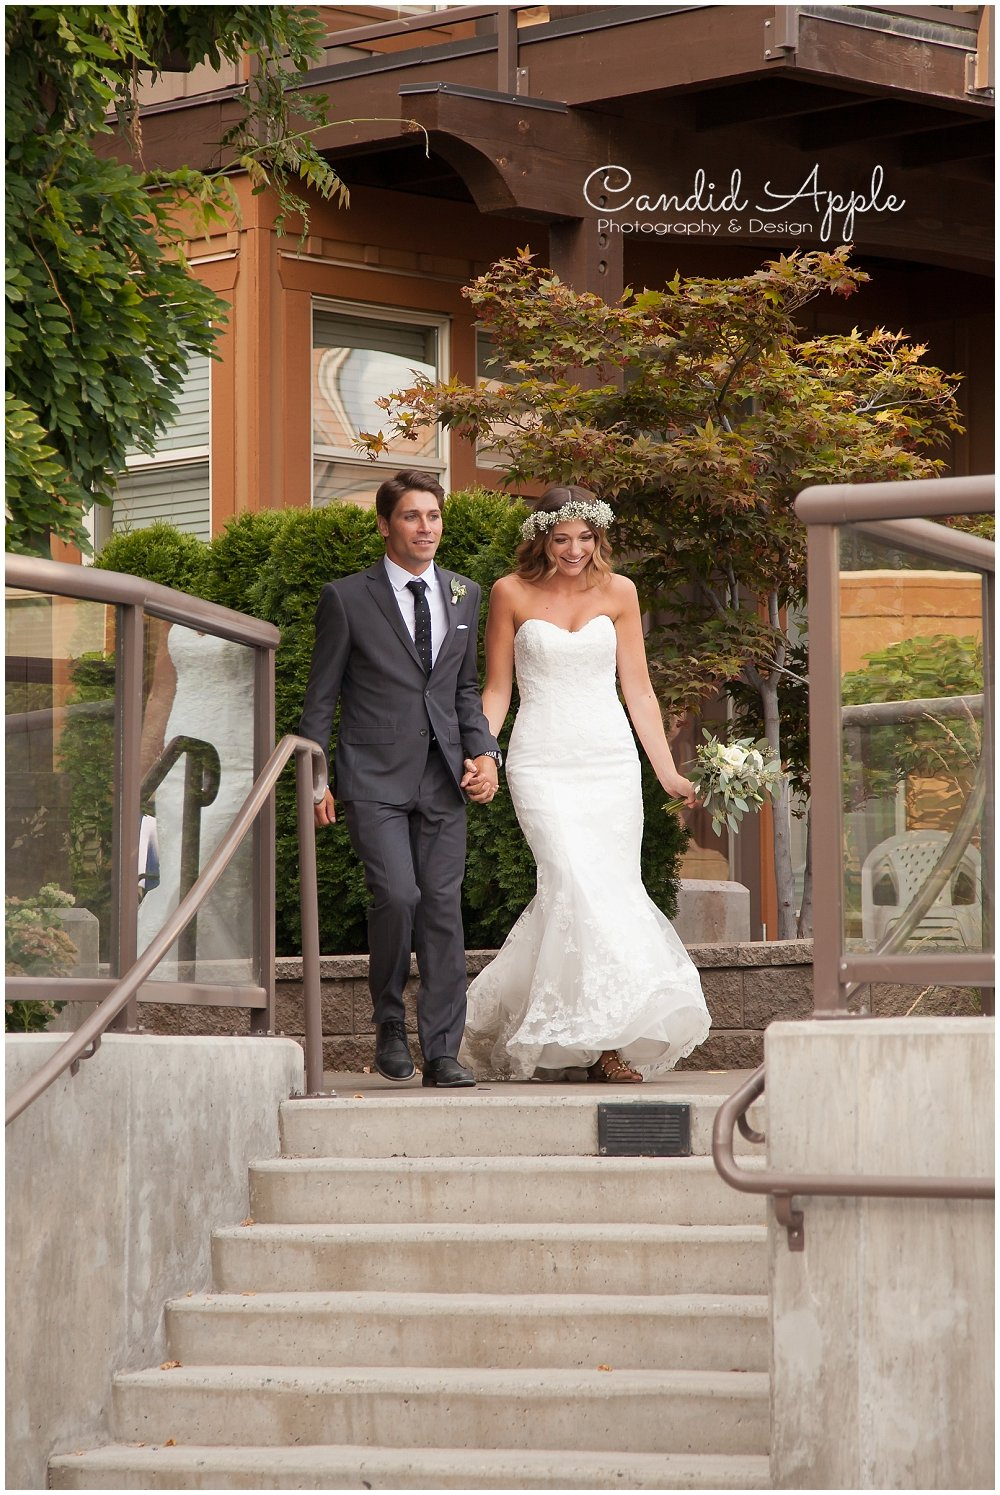 Sanctuary_Garden_West_Kelowna_Candid_Apple_Wedding_Photography_0100